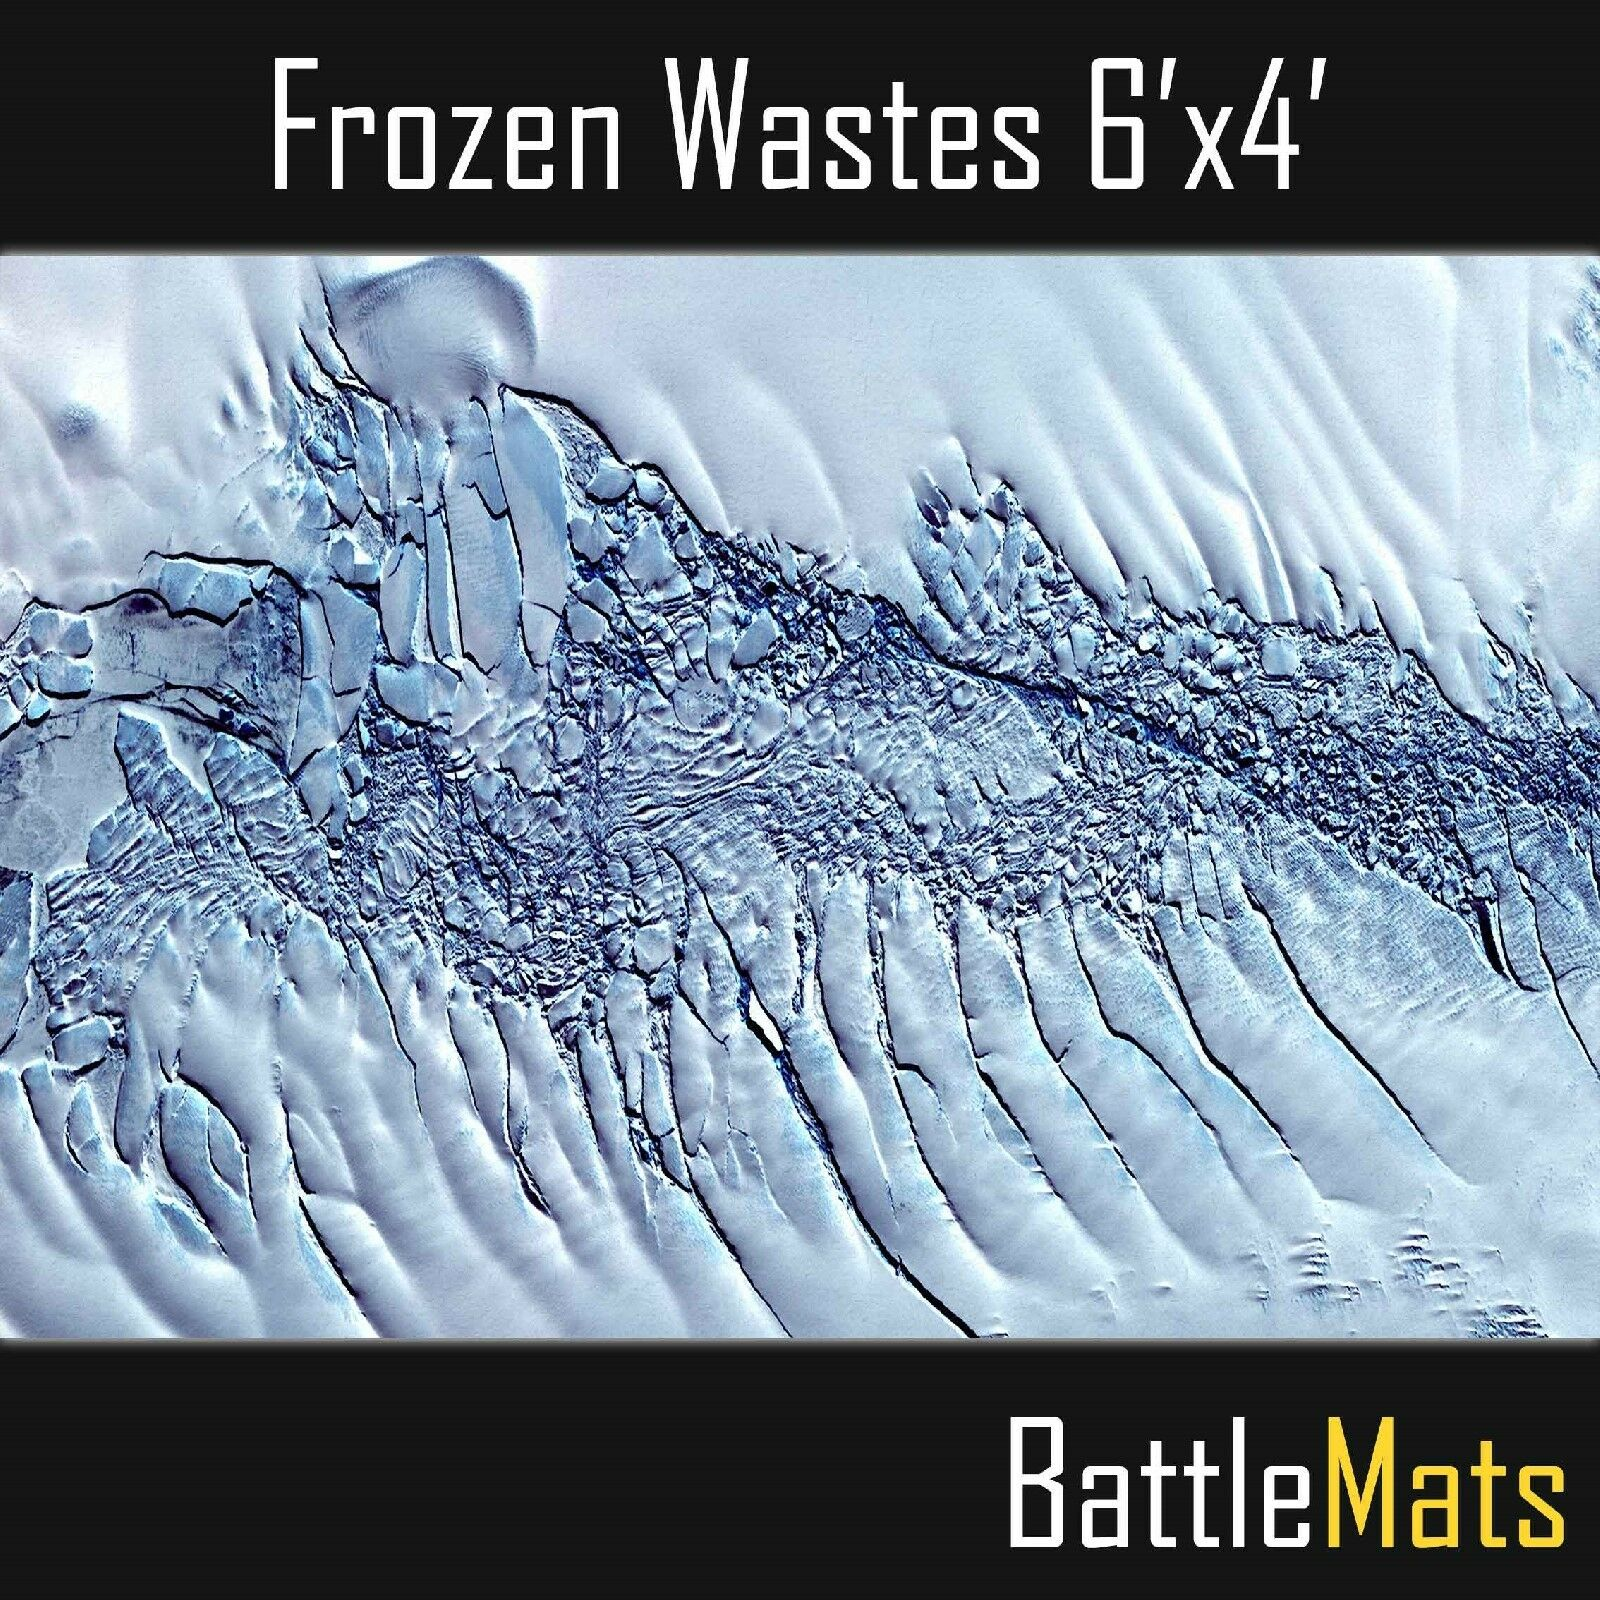 Gaming Battle PVC mat mat mat 6'x4' ideal for Warhammer 40k  Frozen Waste  terrain image 419